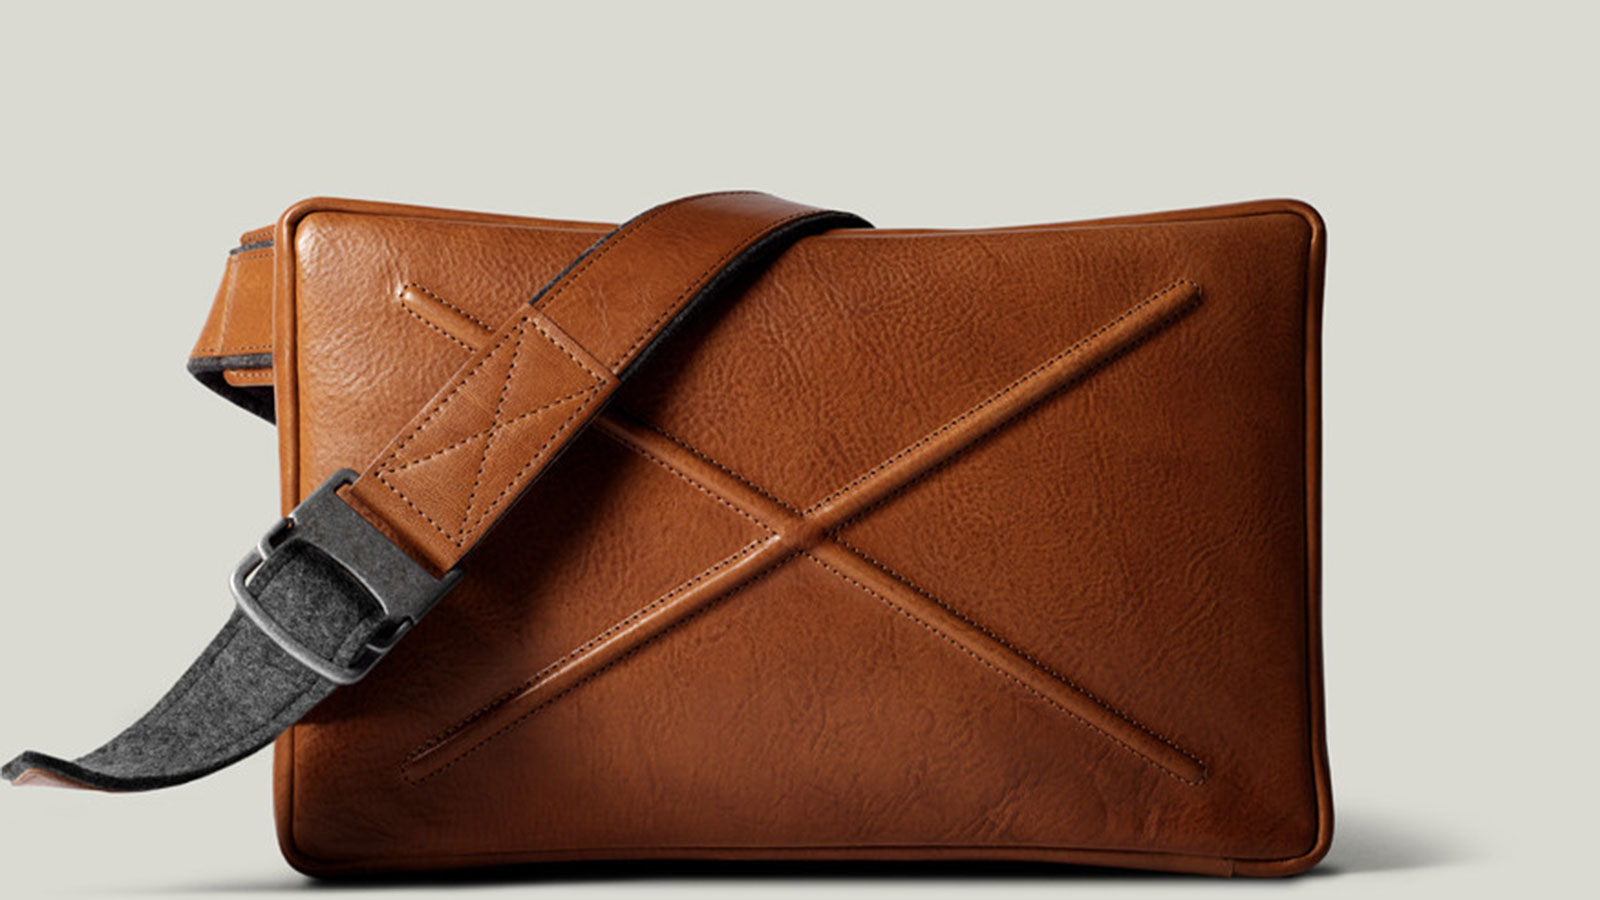 Hardgraft Flat Pack Messenger Bag | best messenger bags for men